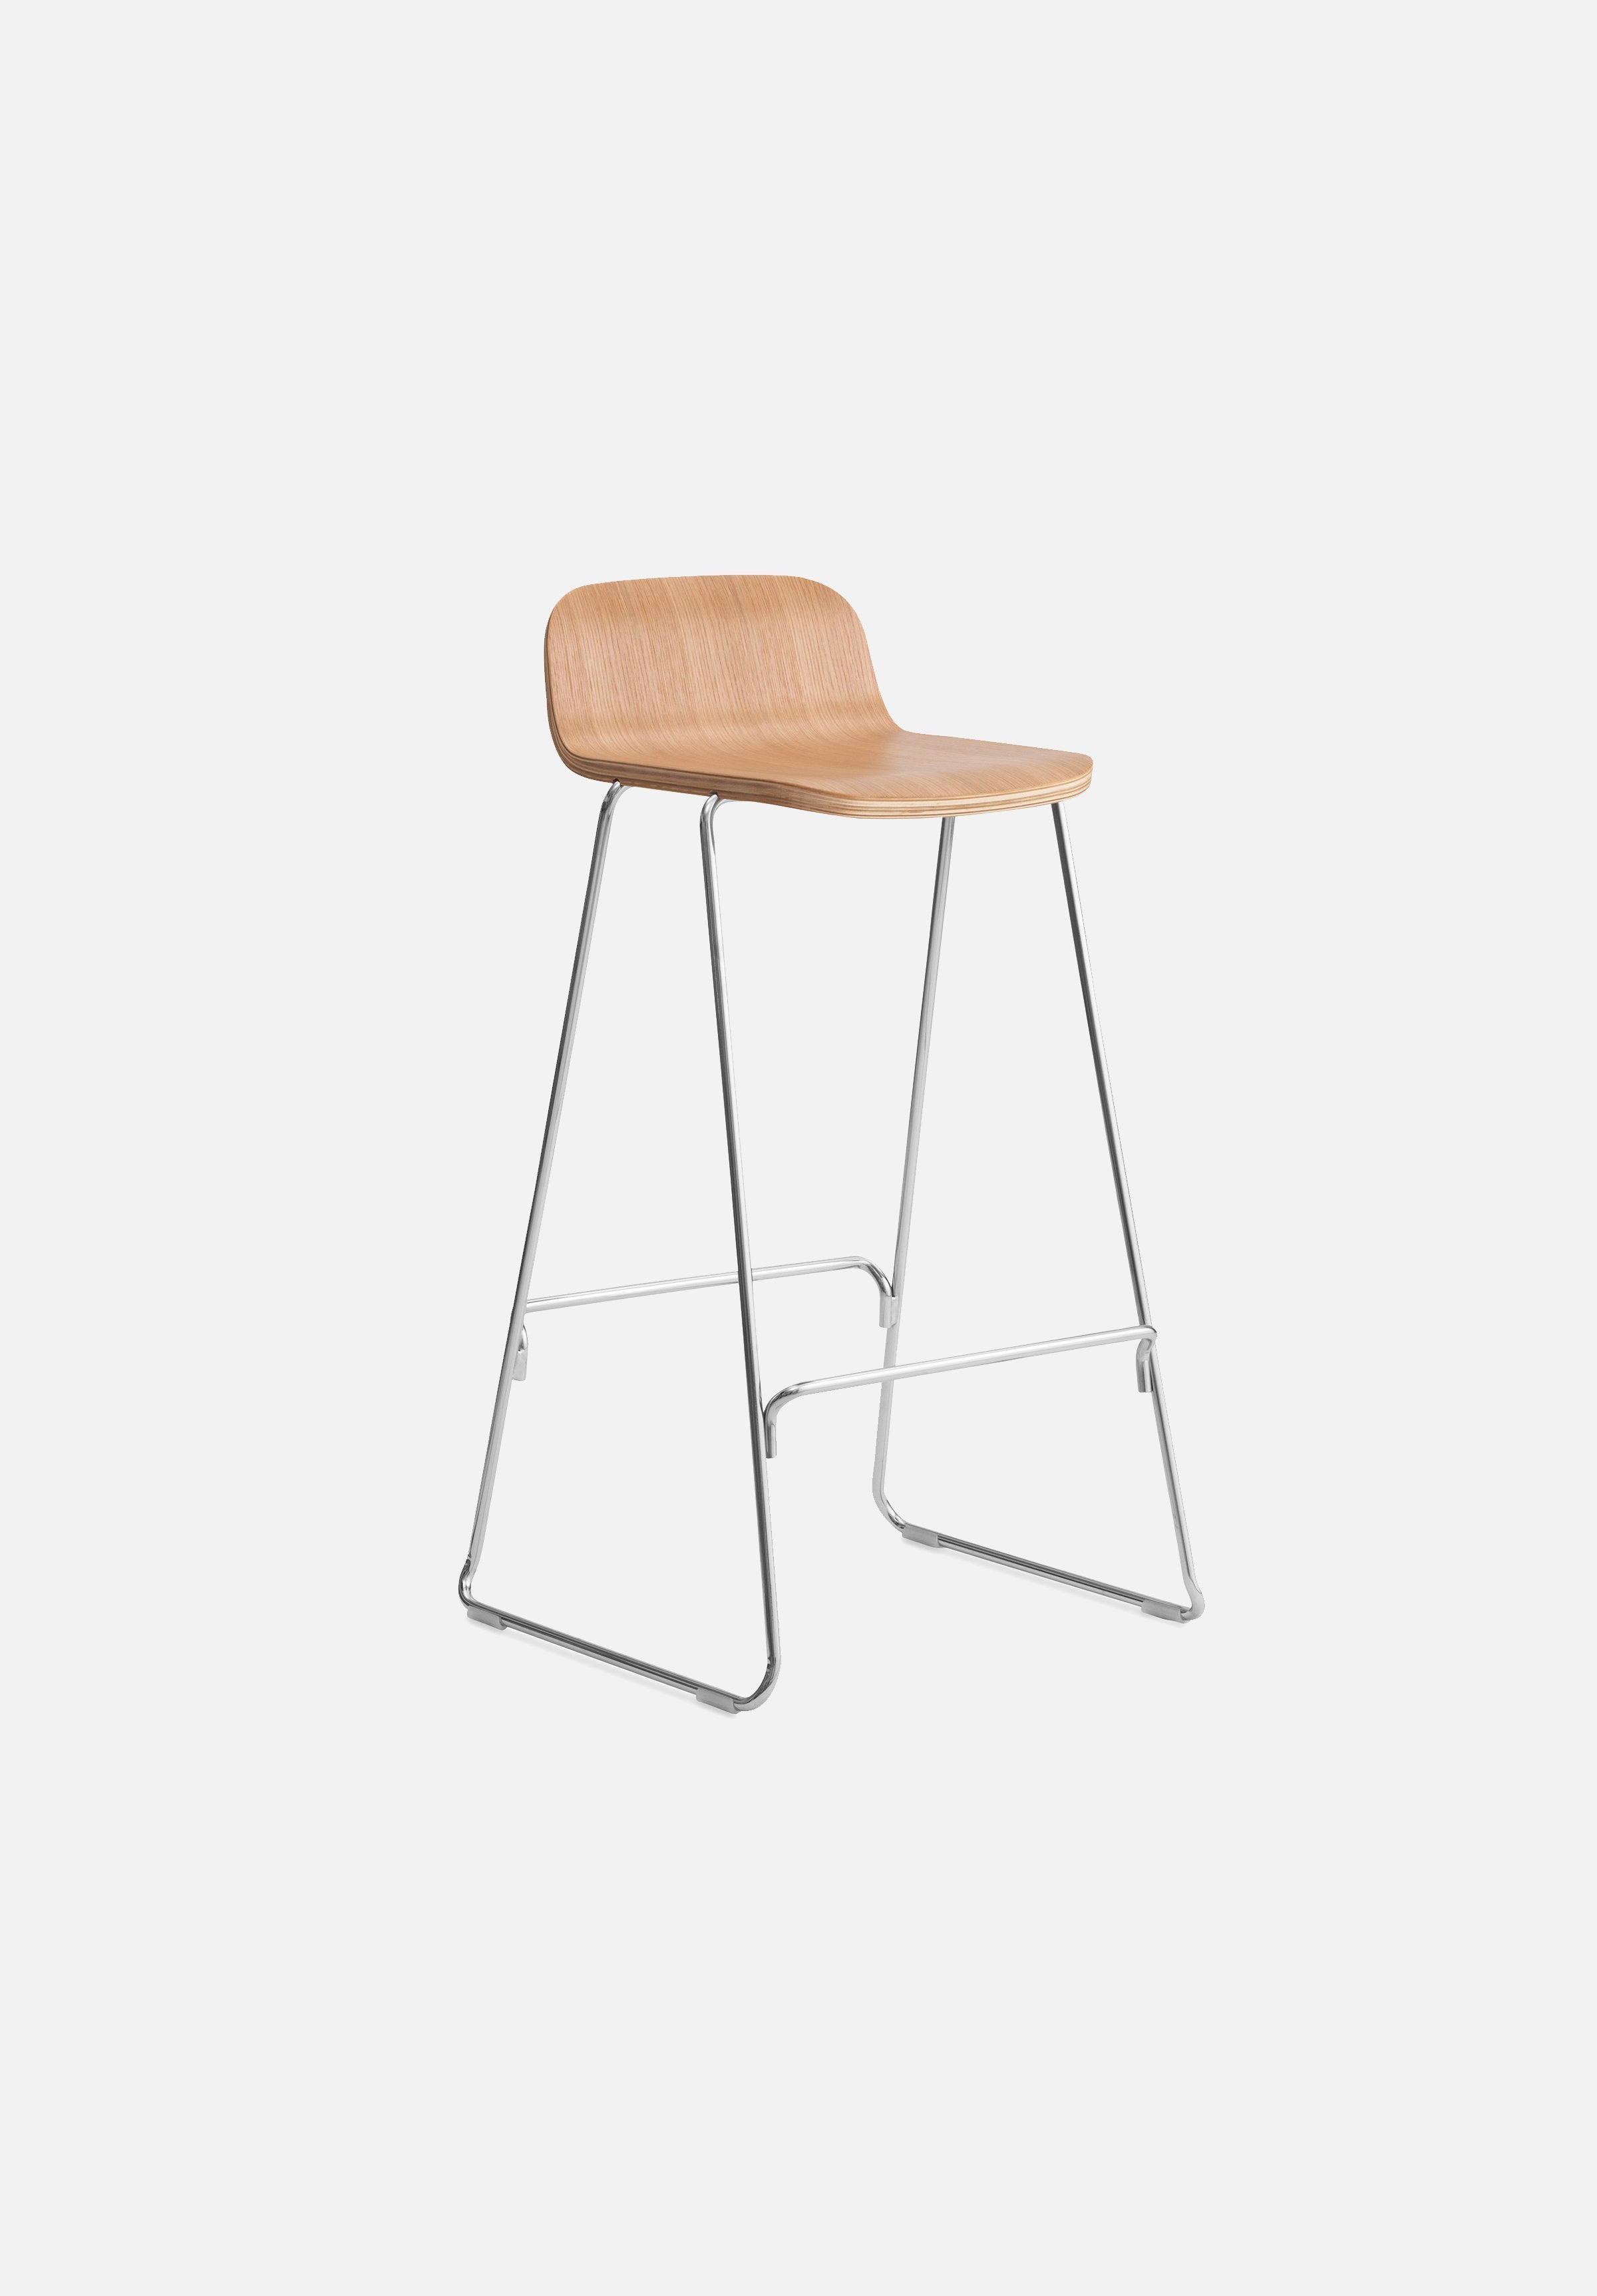 Just Stool-Iskos-Berlin-Normann Copenhagen-oak-75cm-With-Average-canada-design-store-danish-denmark-furniture-interior